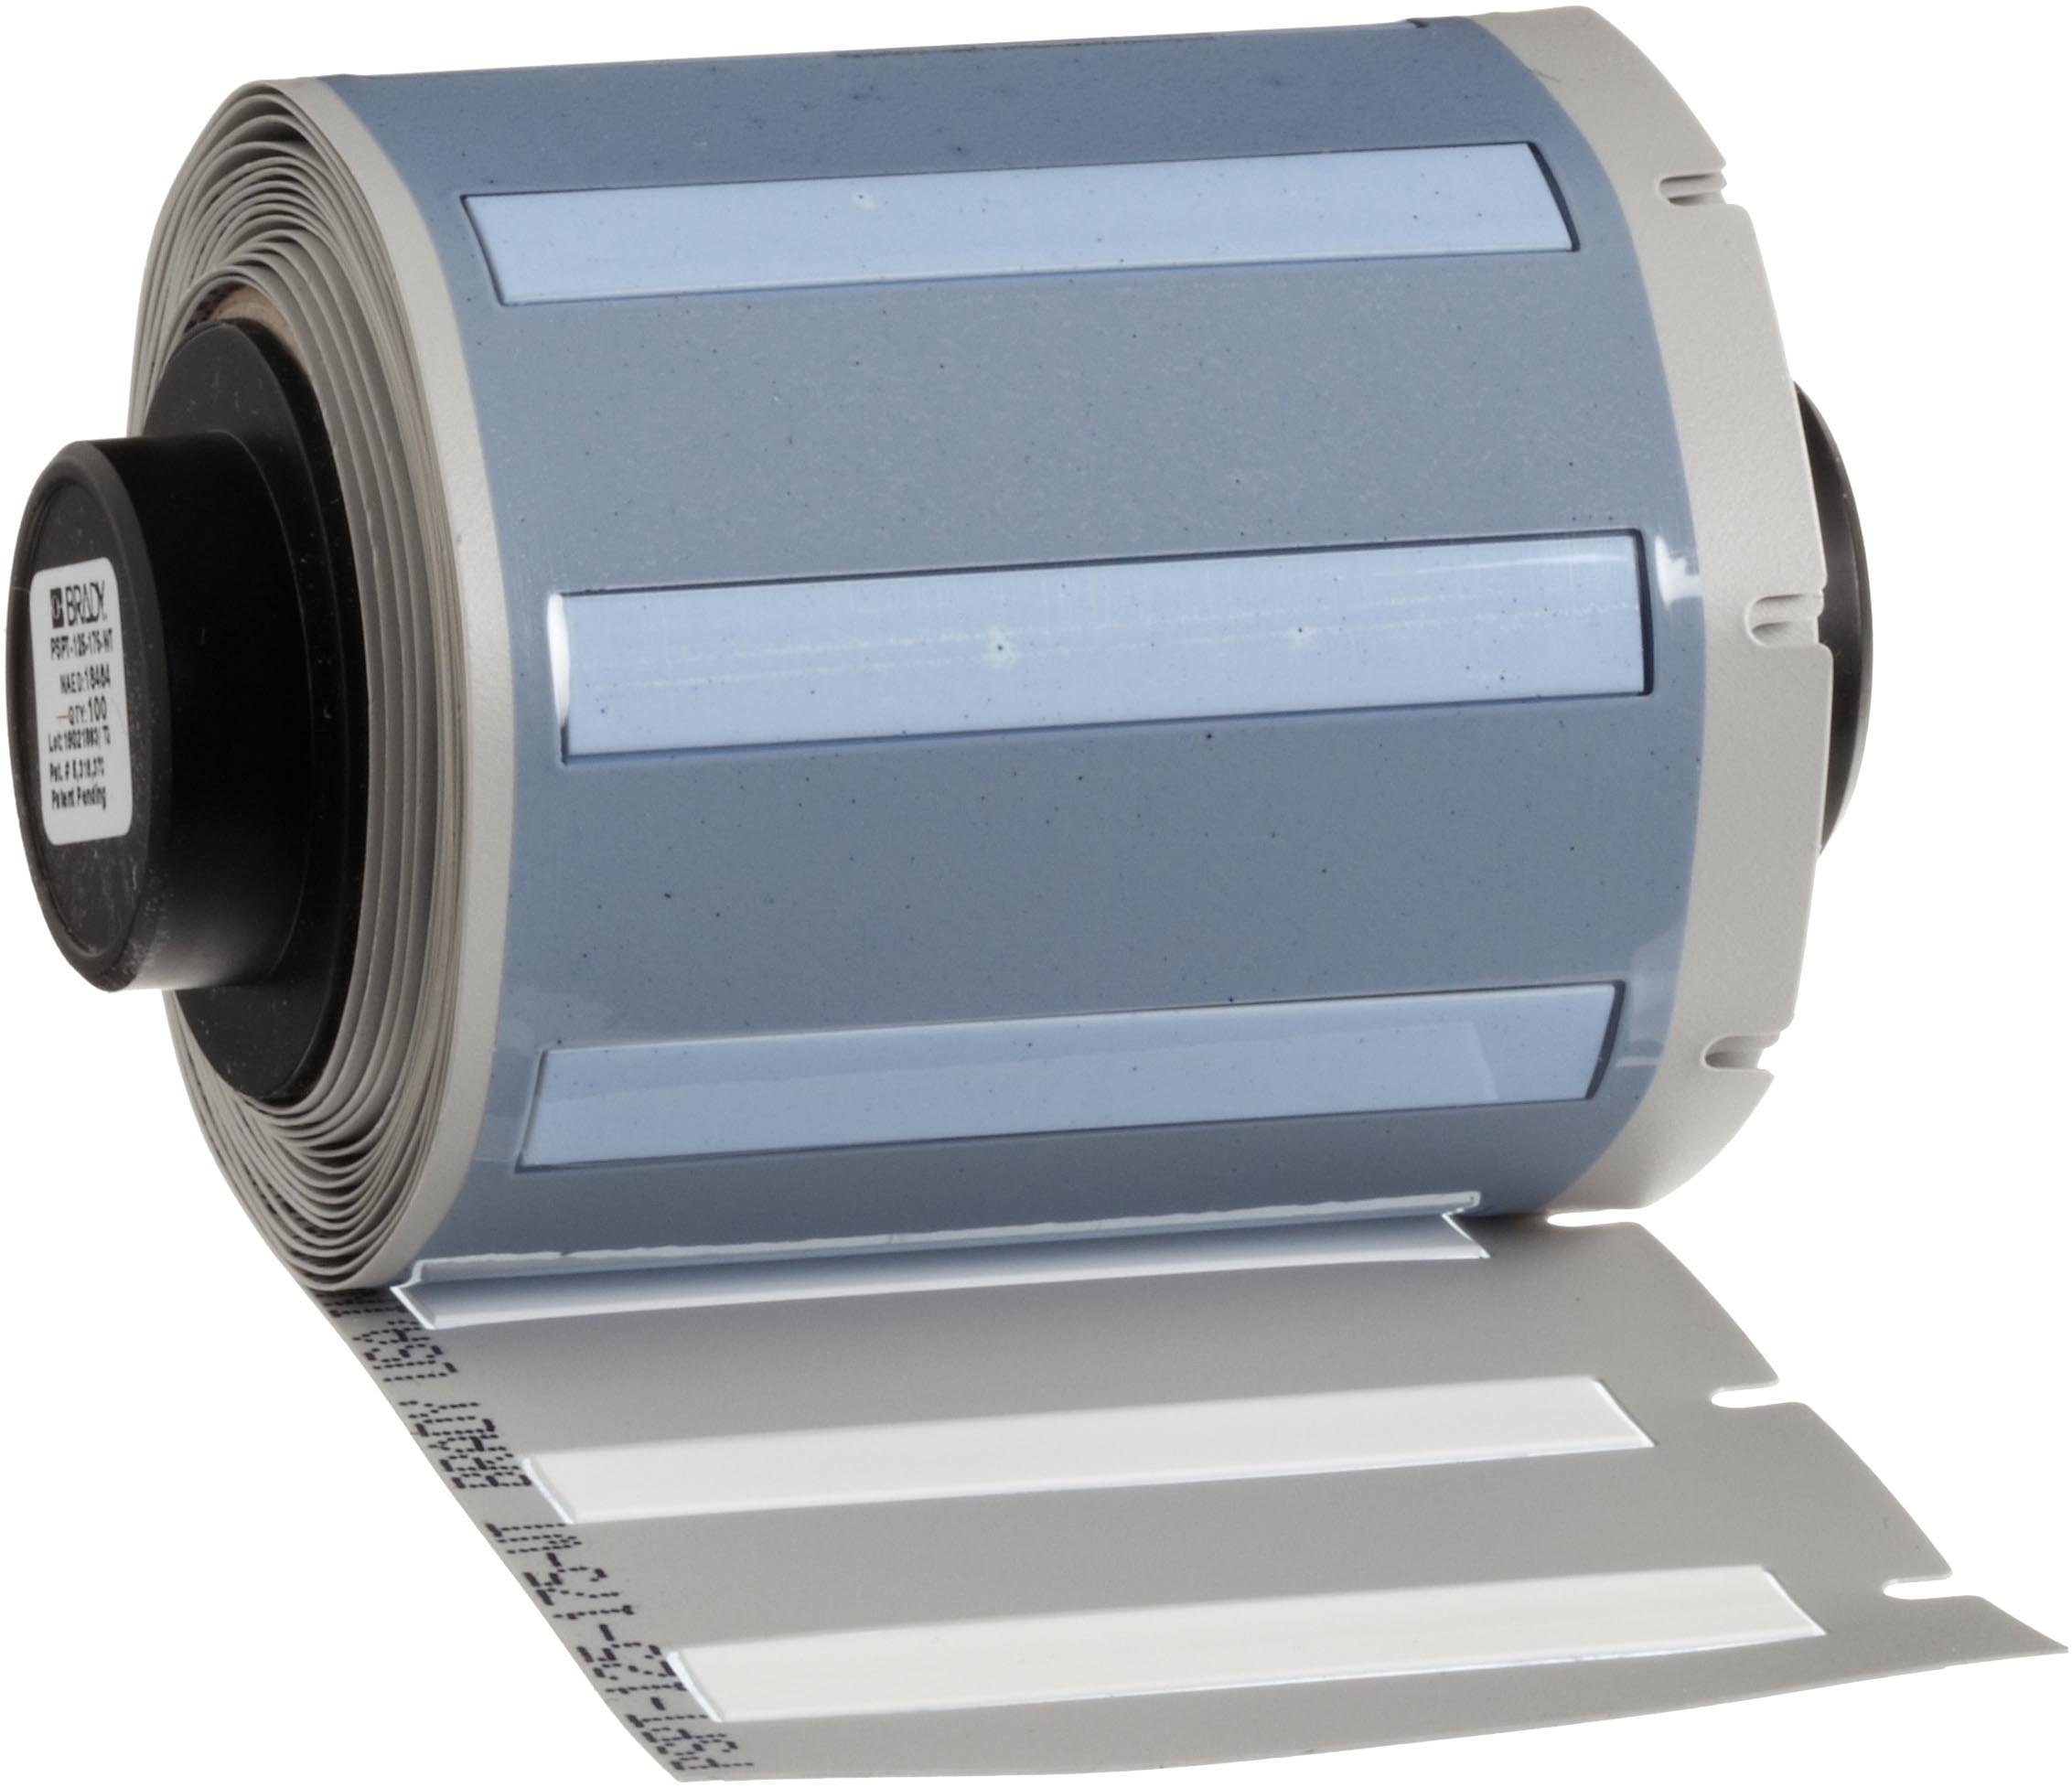 """Brady PSPT-125-175-WT TLS 2200 And TLS PC Link PermaSleeve 0.235"""" Height, 1.765"""" Width, B-342 Heat-Shrink Polyolefin White Color Wire Marker Sleeves (100 Per Roll)"""